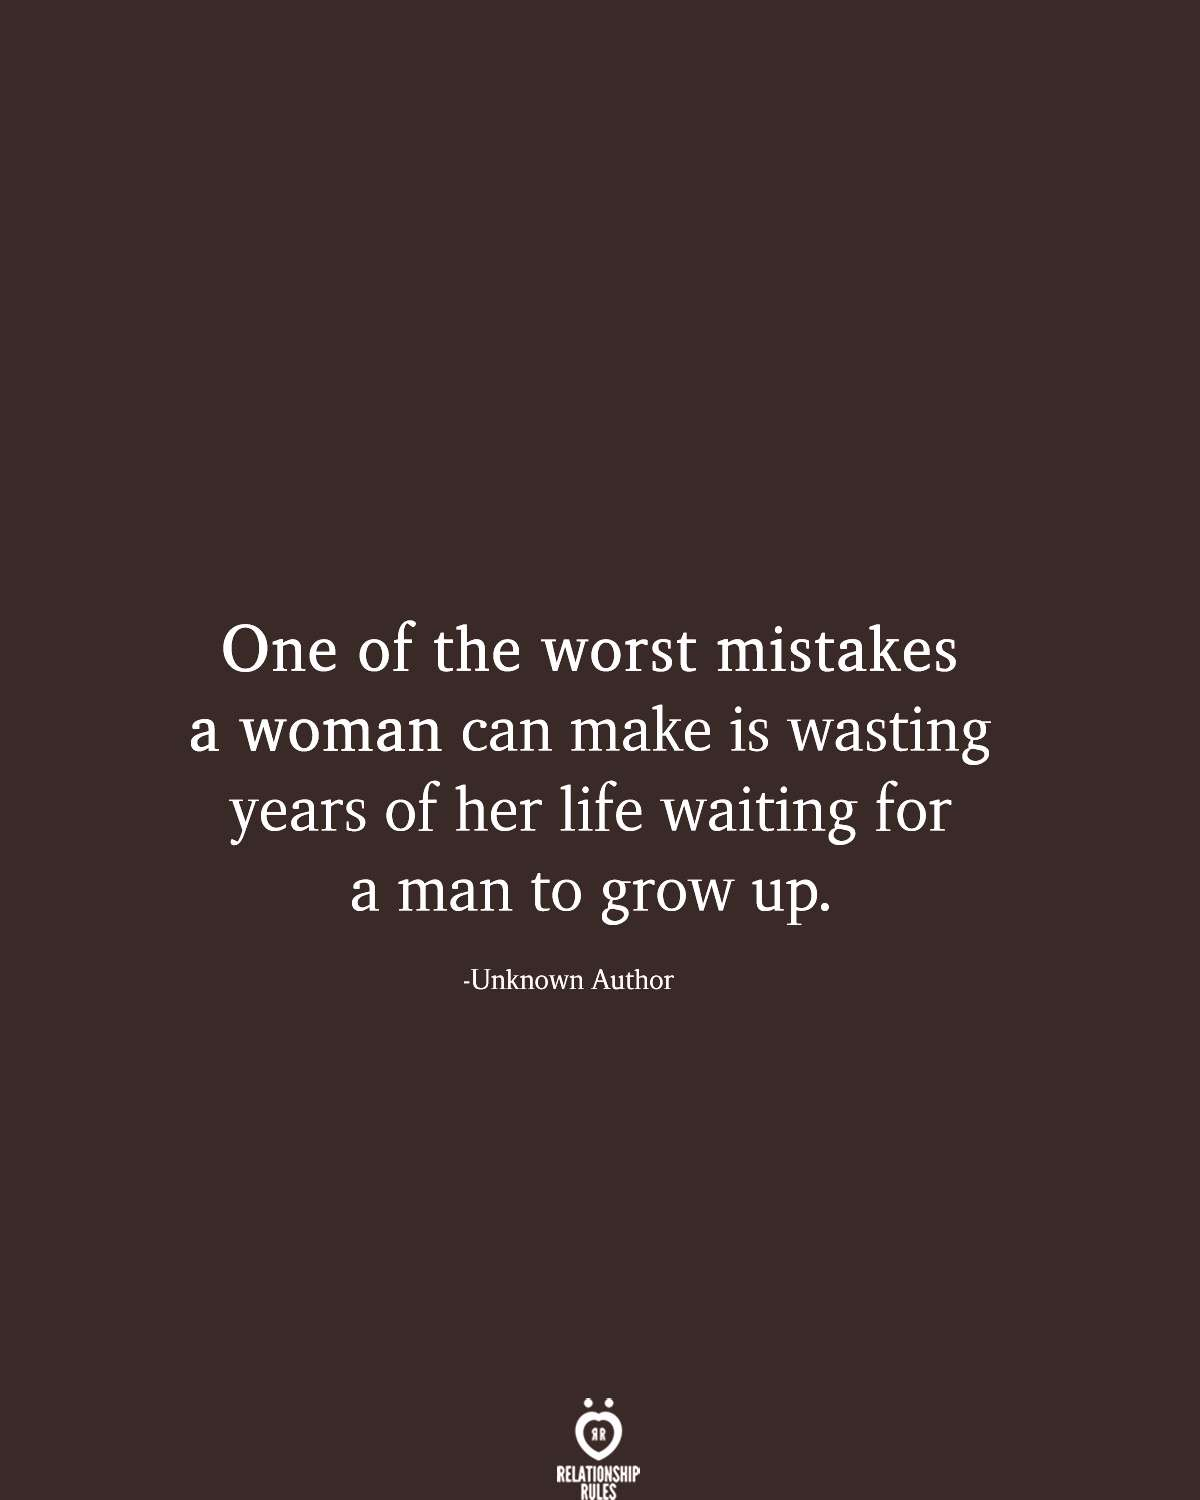 One of the worst mistakes a woman can make is wasting years of her life waiting for a man to grow u